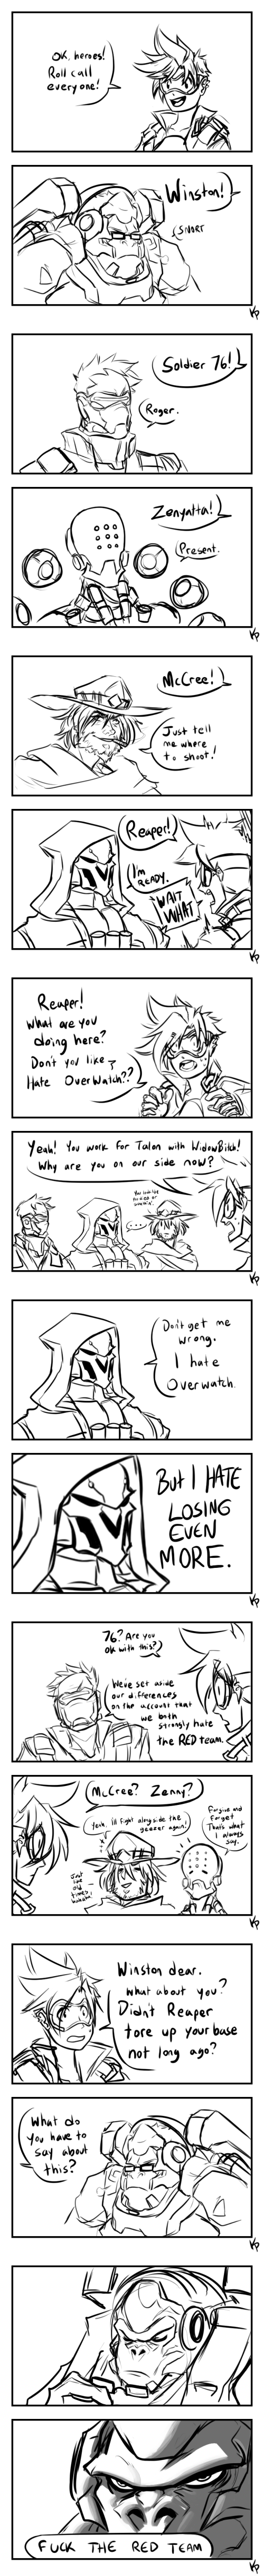 overwatch blizzard video games funny web comics - 8802460416